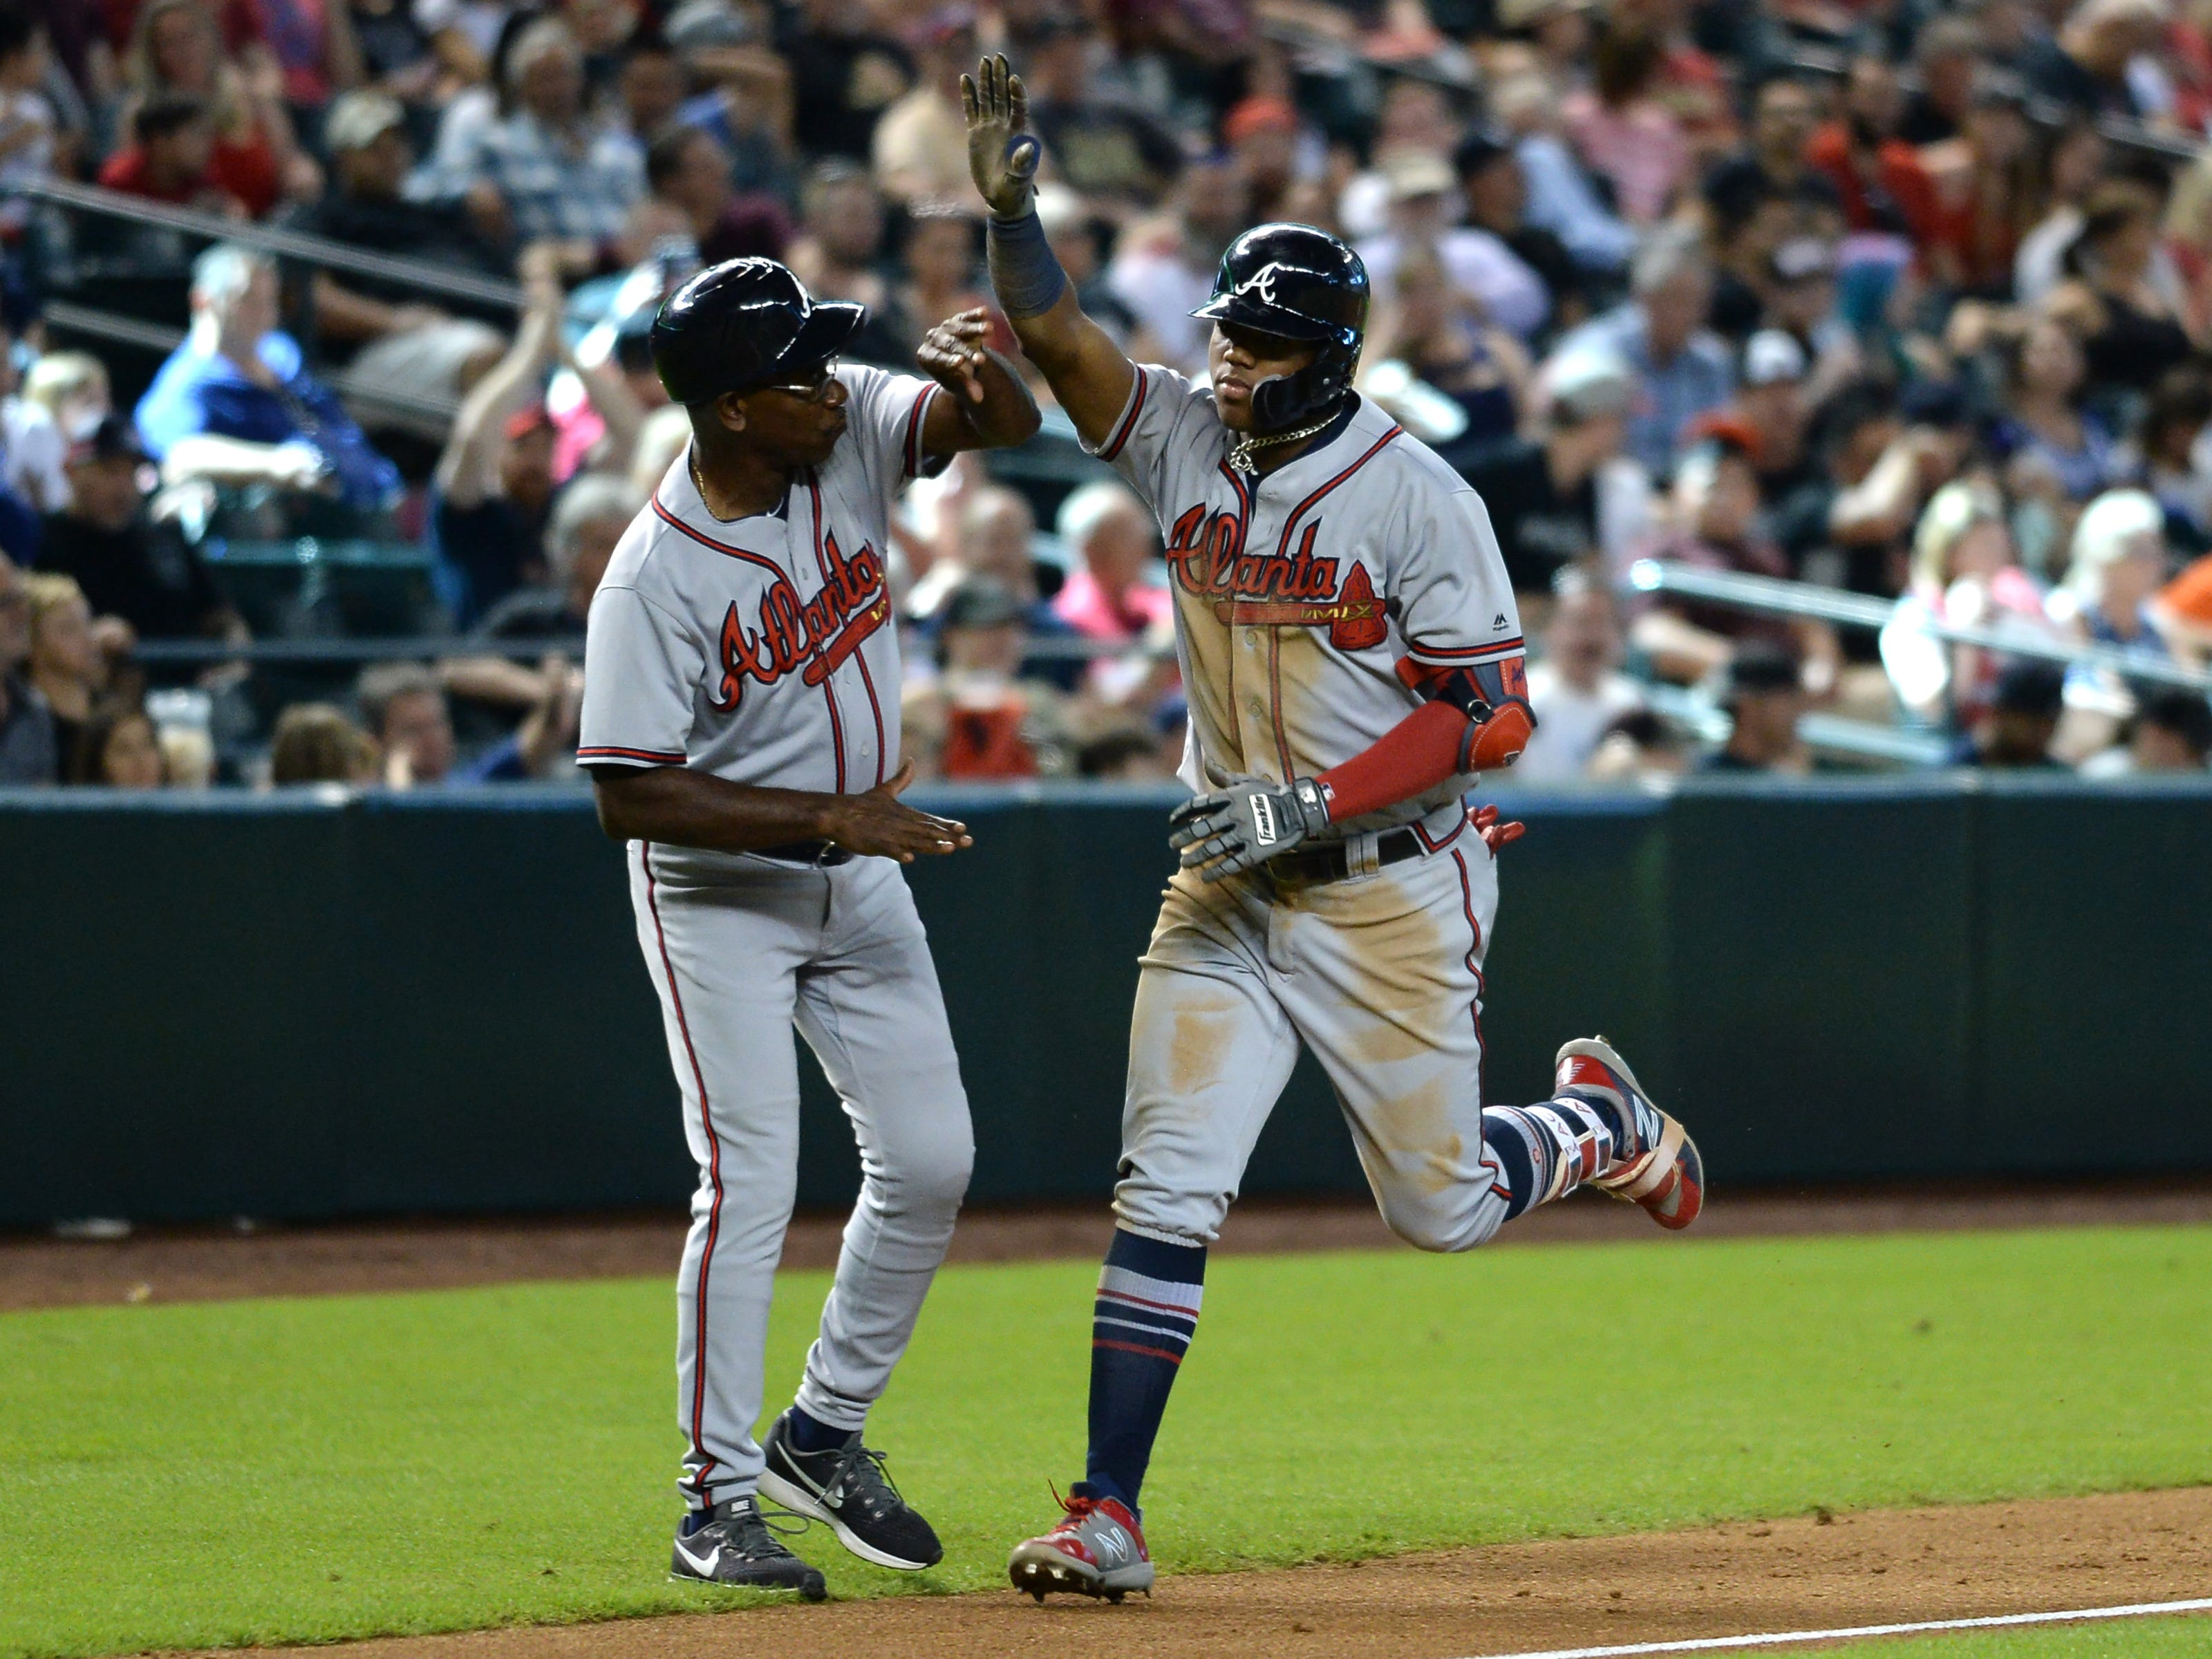 Sep 9, 2018; Phoenix, AZ, USA; Atlanta Braves left fielder Ronald Acuna Jr. (13) slaps hands with Atlanta Braves third base coach Ron Washington (37) after hitting a two-run home run against the Arizona Diamondbacks during the sixth inning at Chase Field.